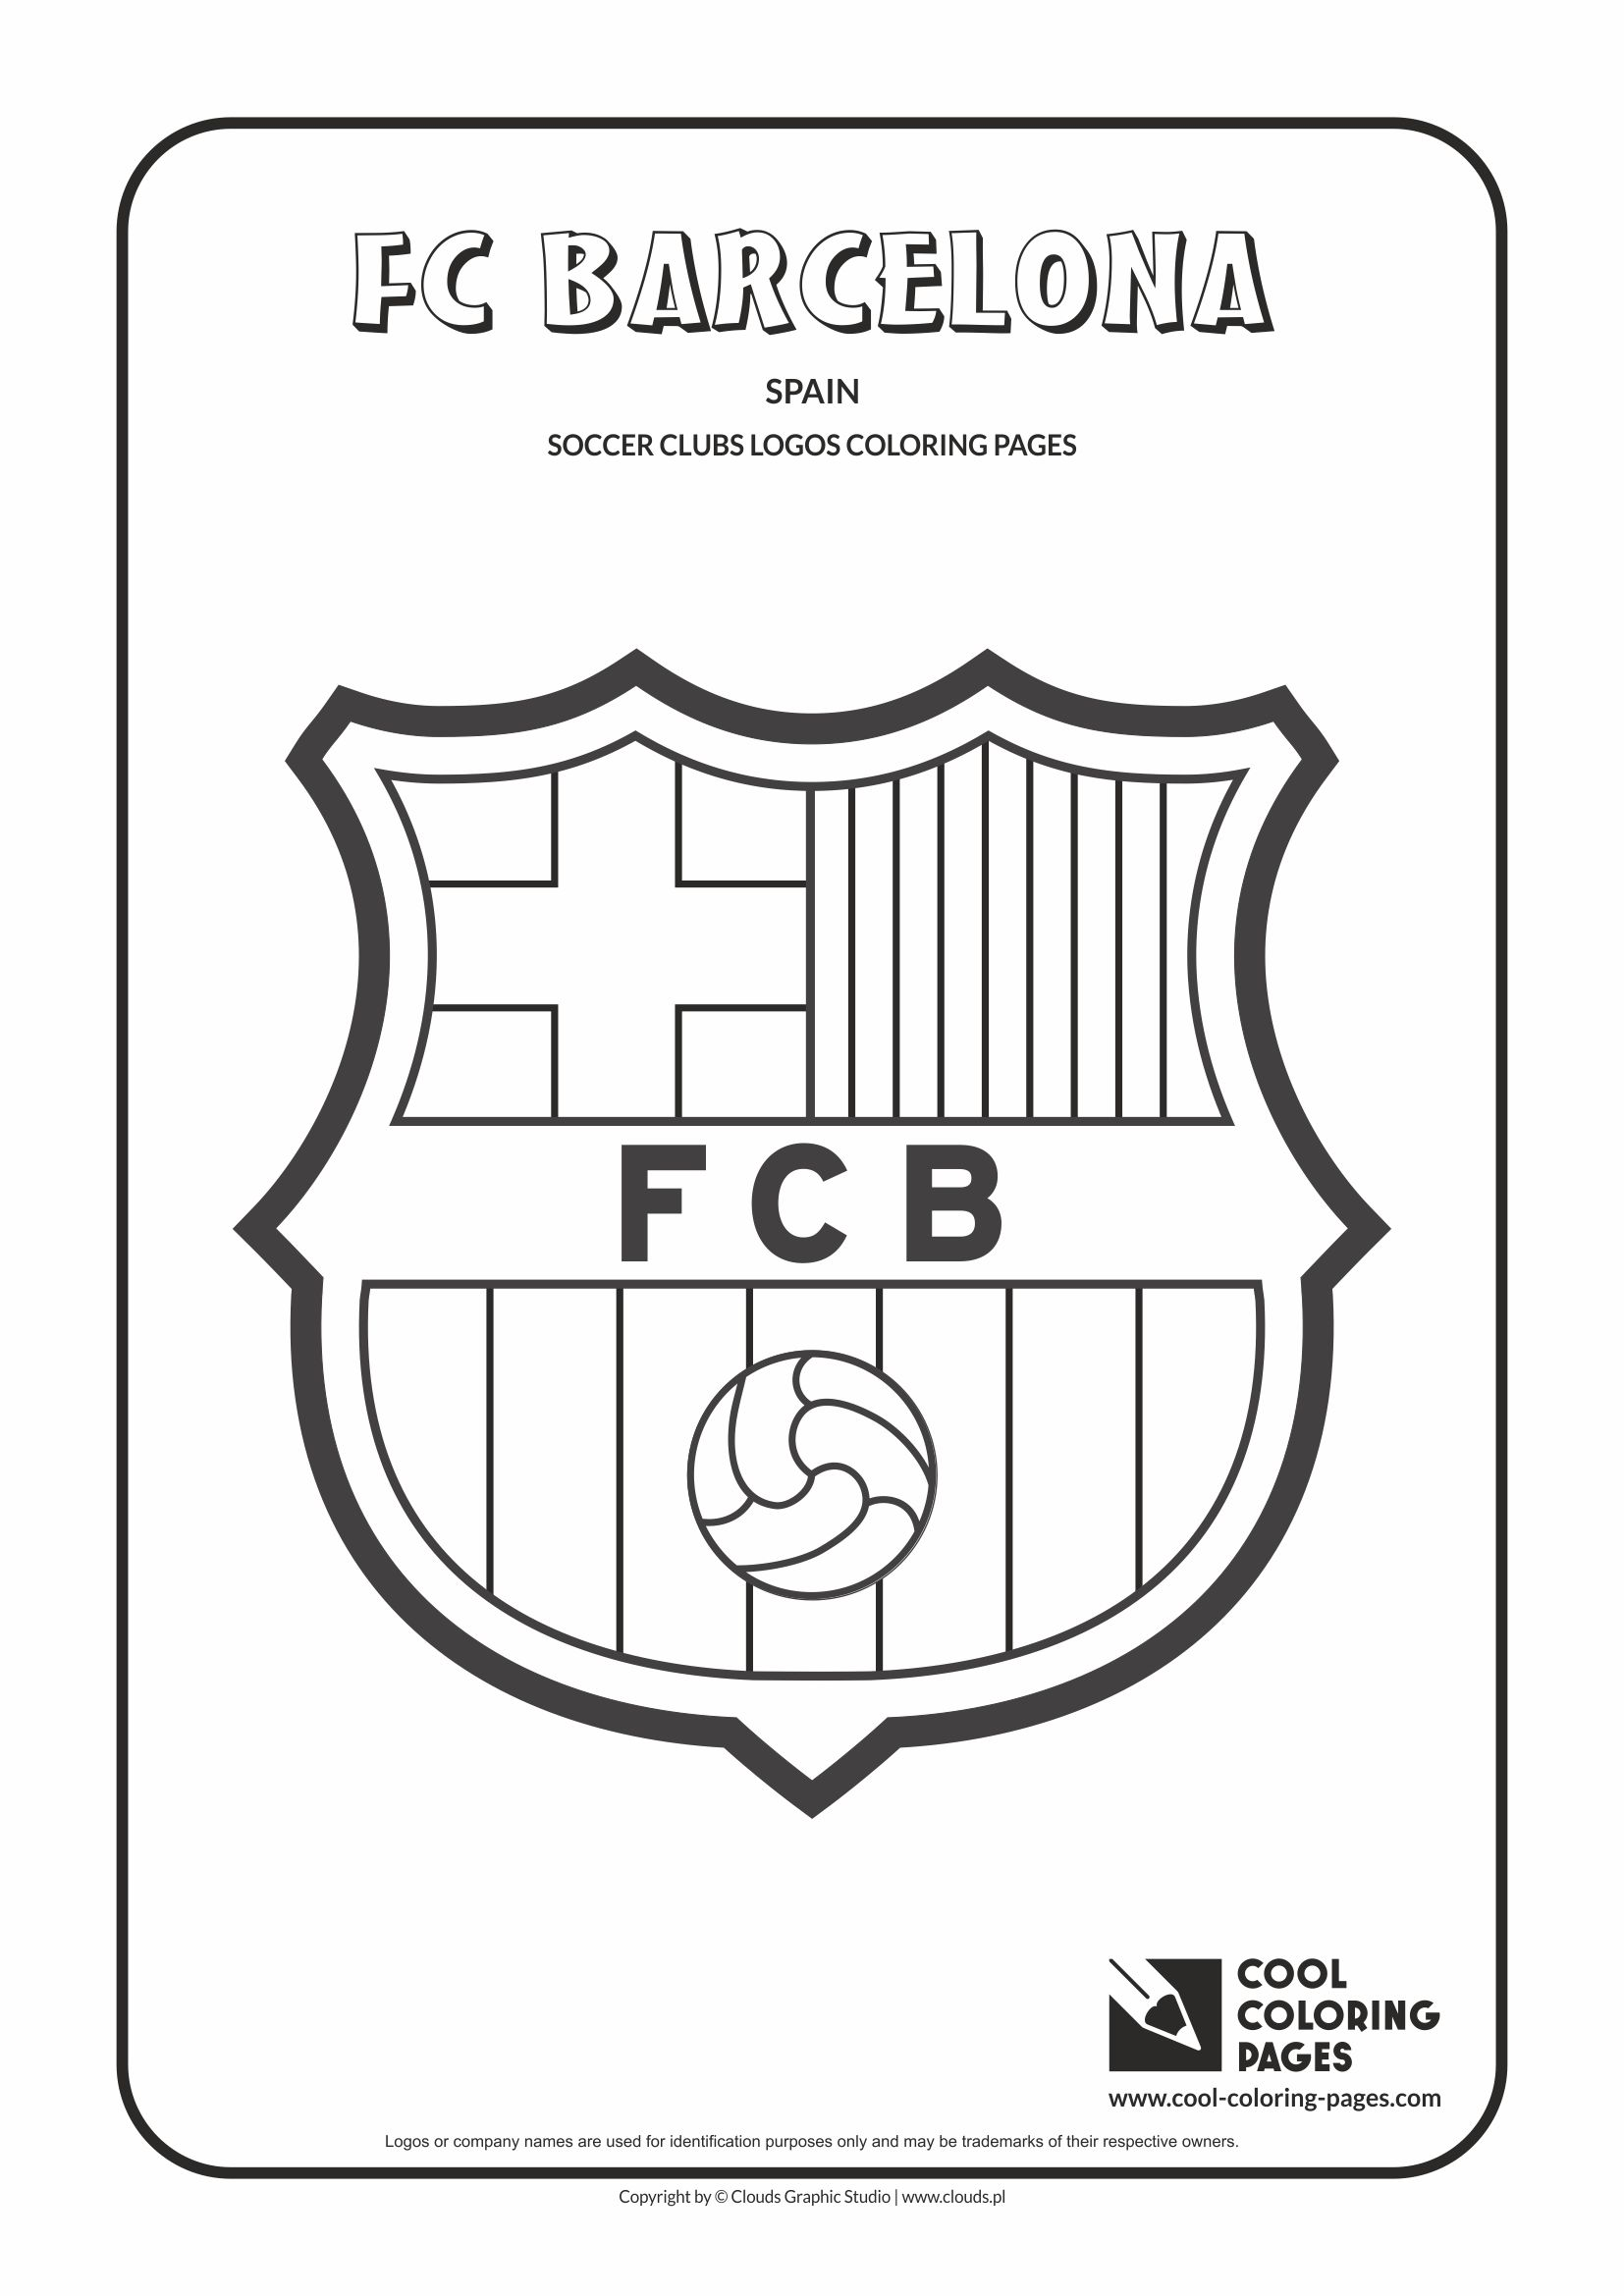 cool coloring pages others fc barcelona logo coloring page with fc barcelona logo - Cool Colouring Pages